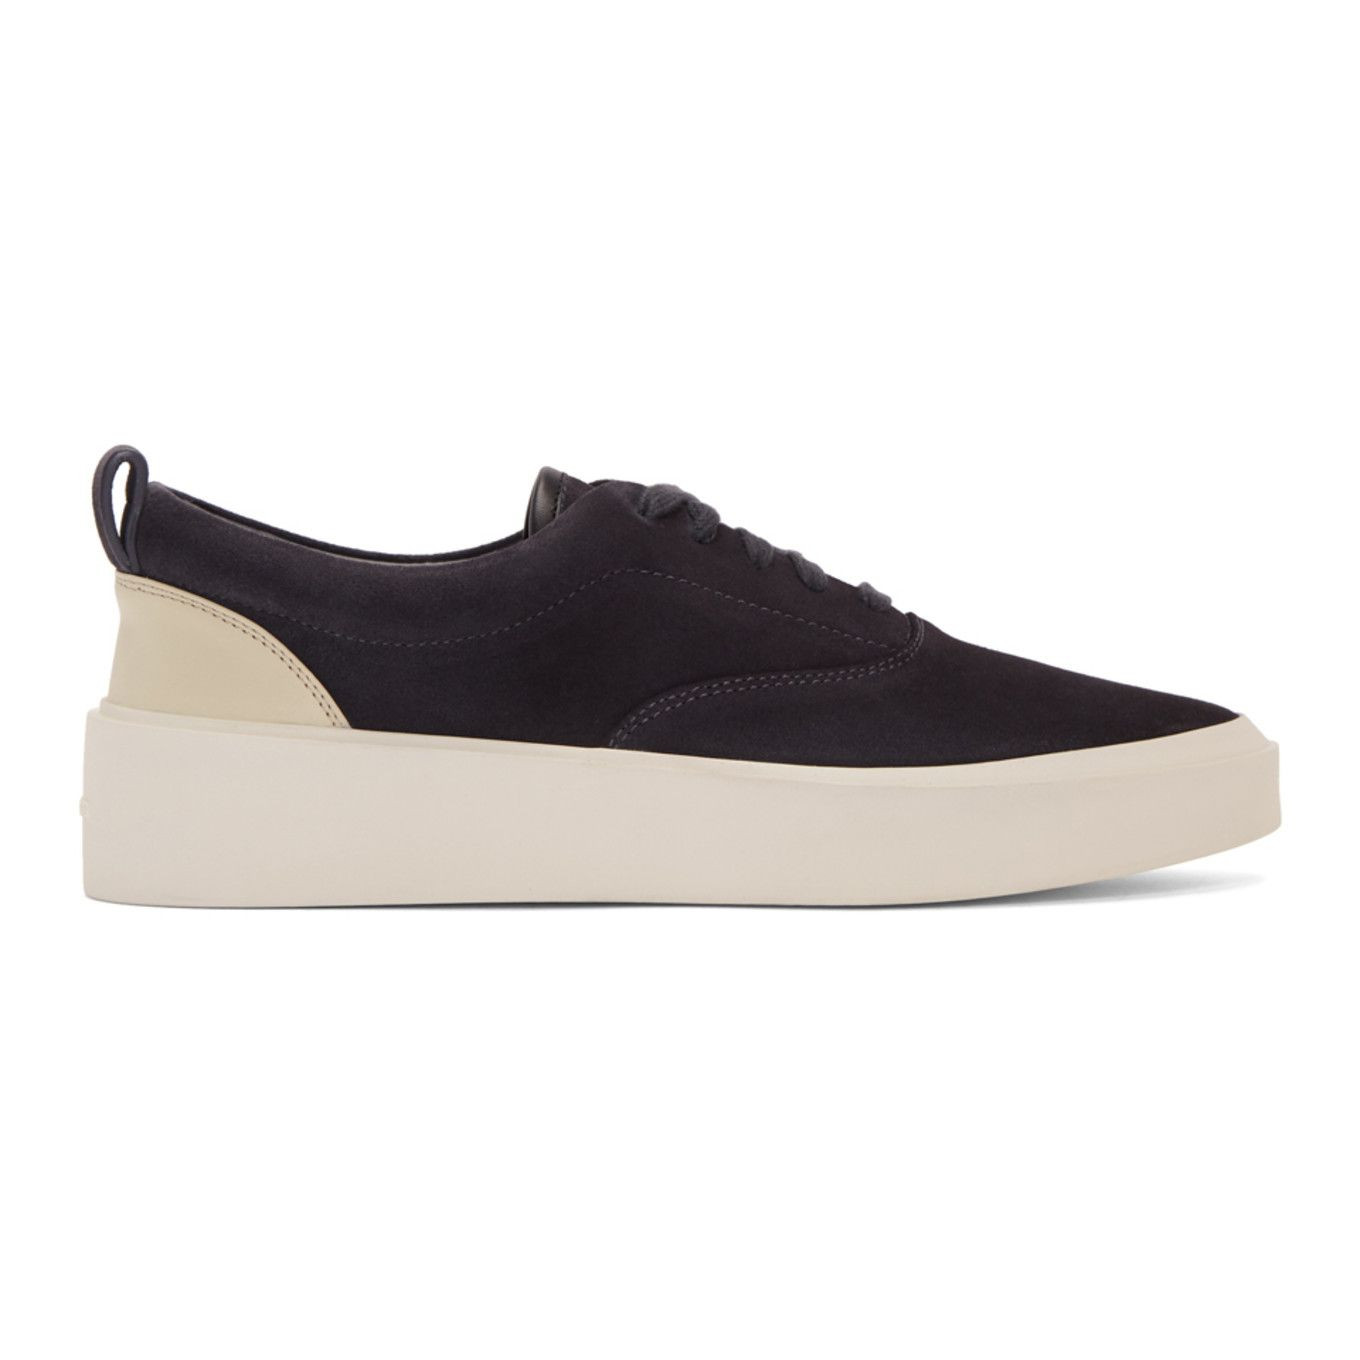 Sneakers, Suede sneakers, Suede lace